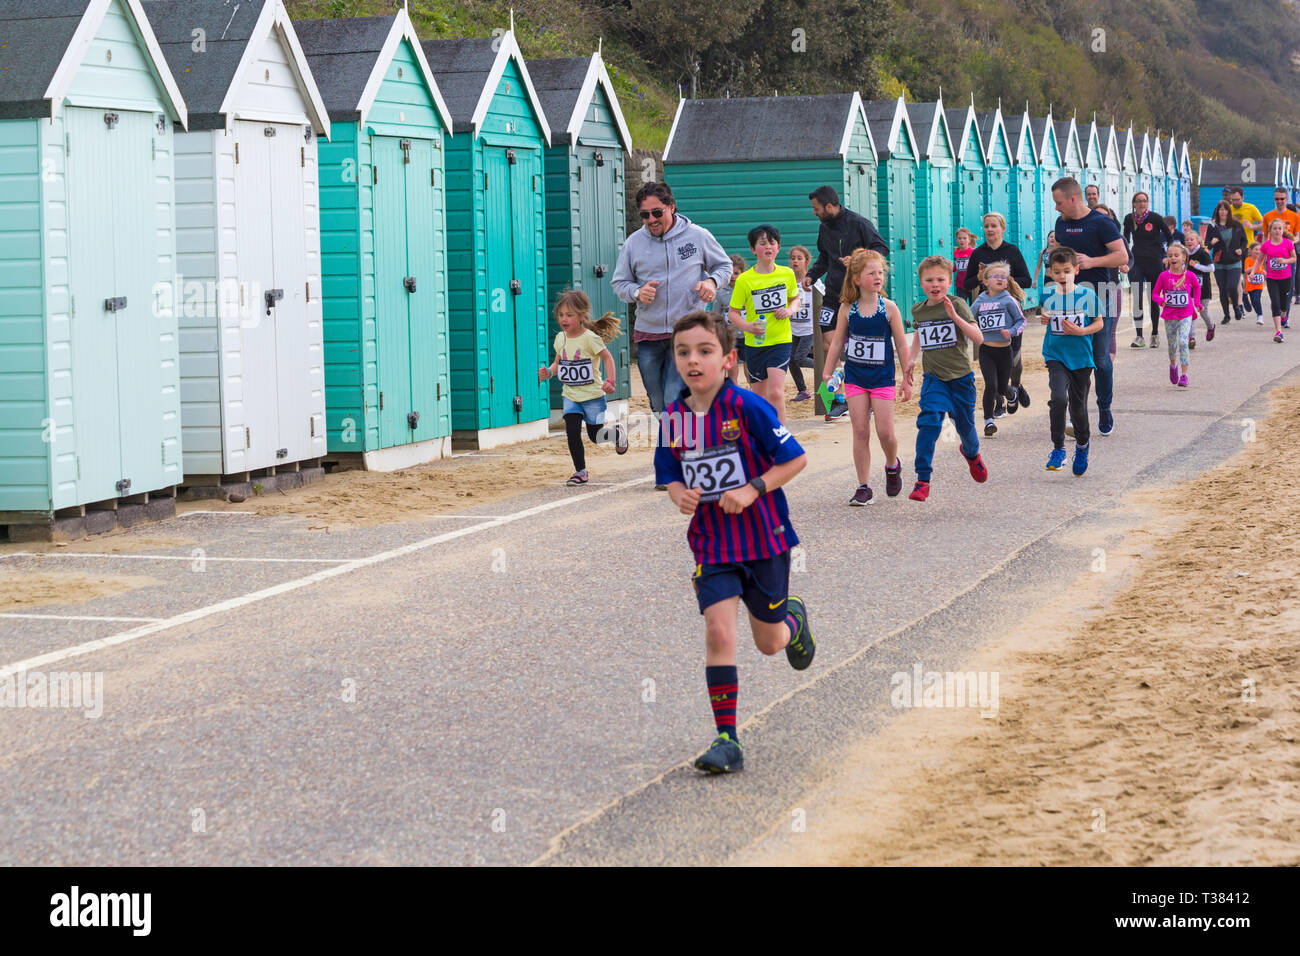 Bournemouth, Dorset, UK. 7th April 2019. Runners take part in the Bournemouth Bay Run on the theme of fun fairy-tale along Bournemouth's sea front - 1k Kids Fun Run. Participants run to raise vital funds for the British Heart Foundation charity to fight against heart disease. A dry day with hazy sunshine. Credit: Carolyn Jenkins/Alamy Live News - Stock Image